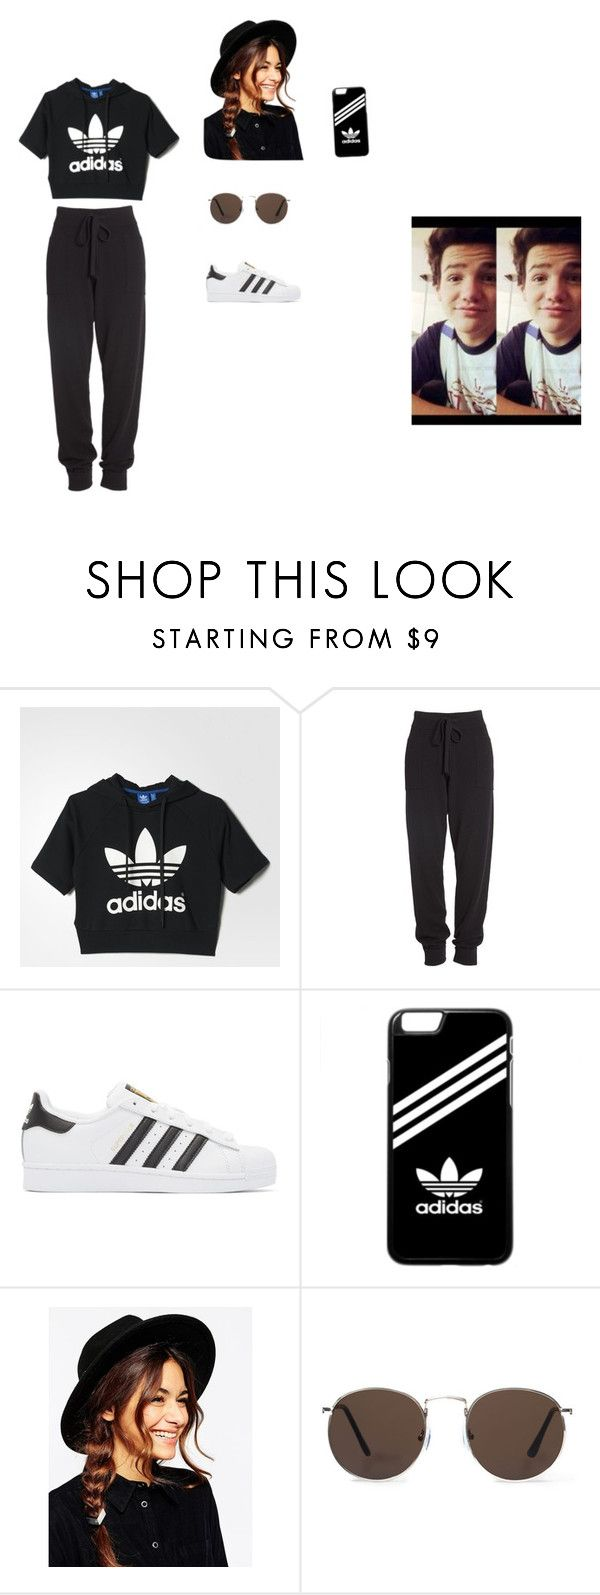 """Aarom Carpenter by Erin"" by lilybitts ❤ liked on Polyvore featuring adidas, Donna Karan, adidas Originals, ASOS and MANGO"